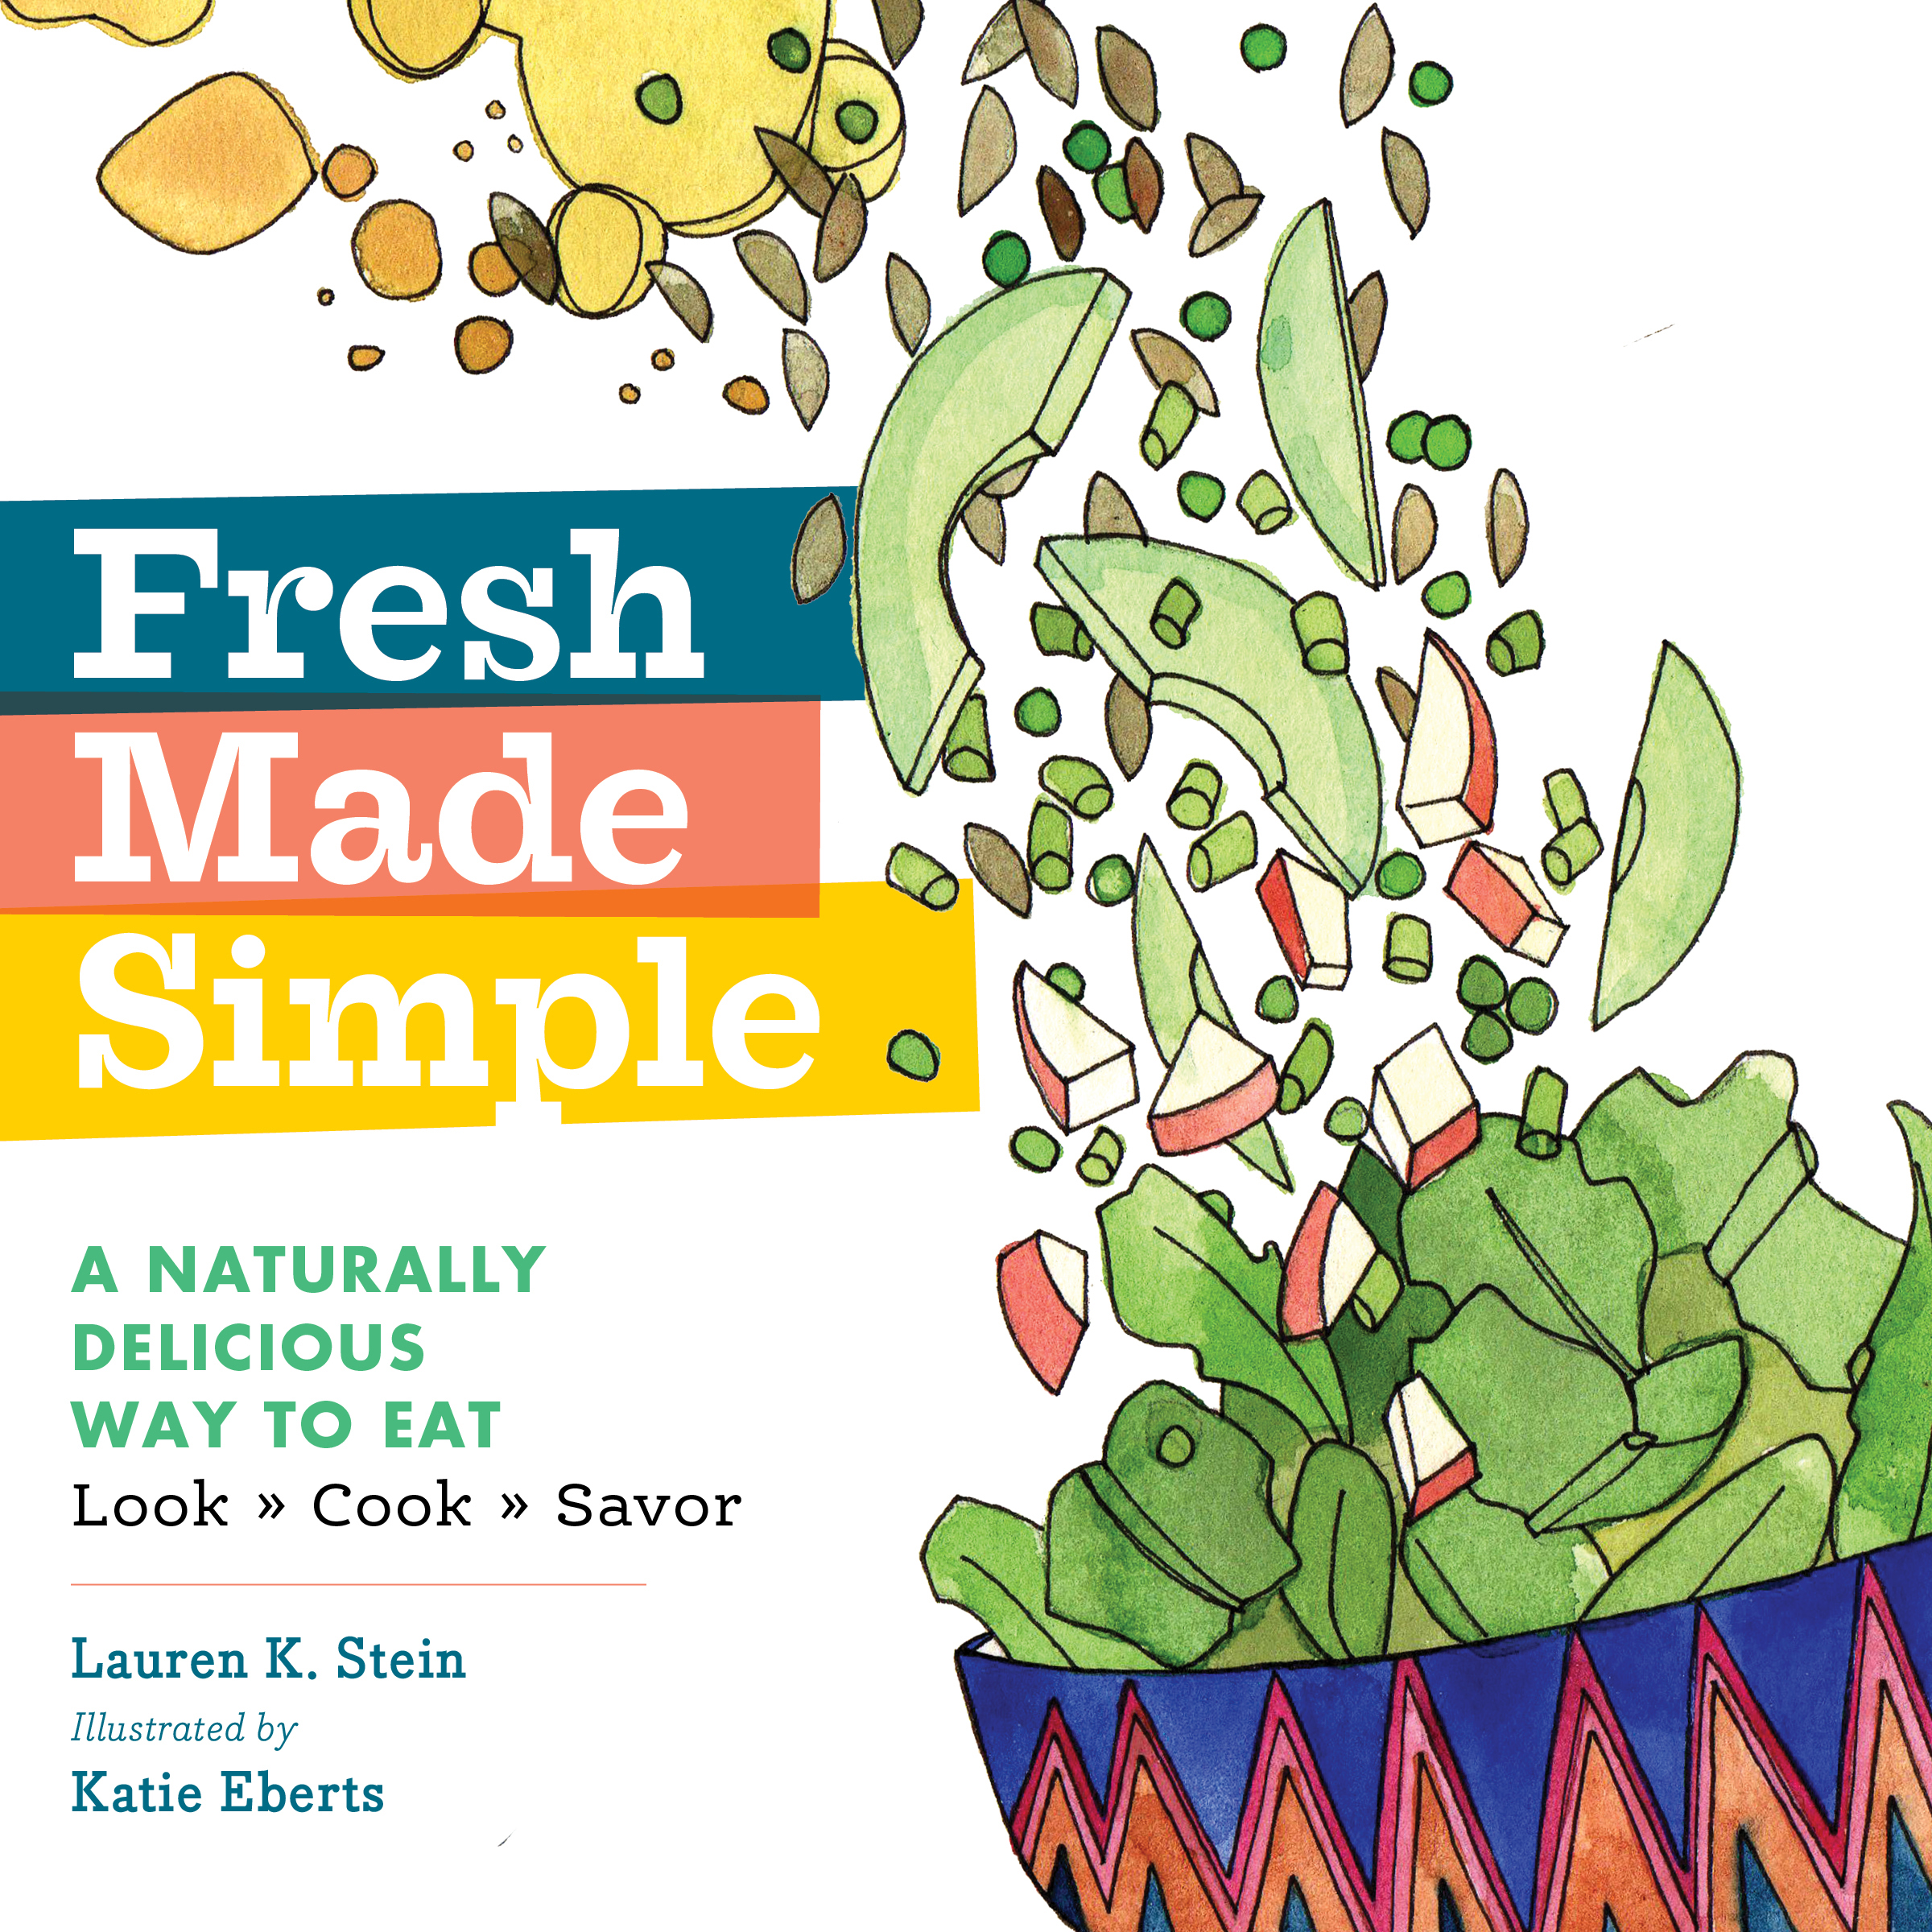 Fresh Made Simple A Naturally Delicious Way to Eat: Look, Cook, and Savor - Lauren K. Stein